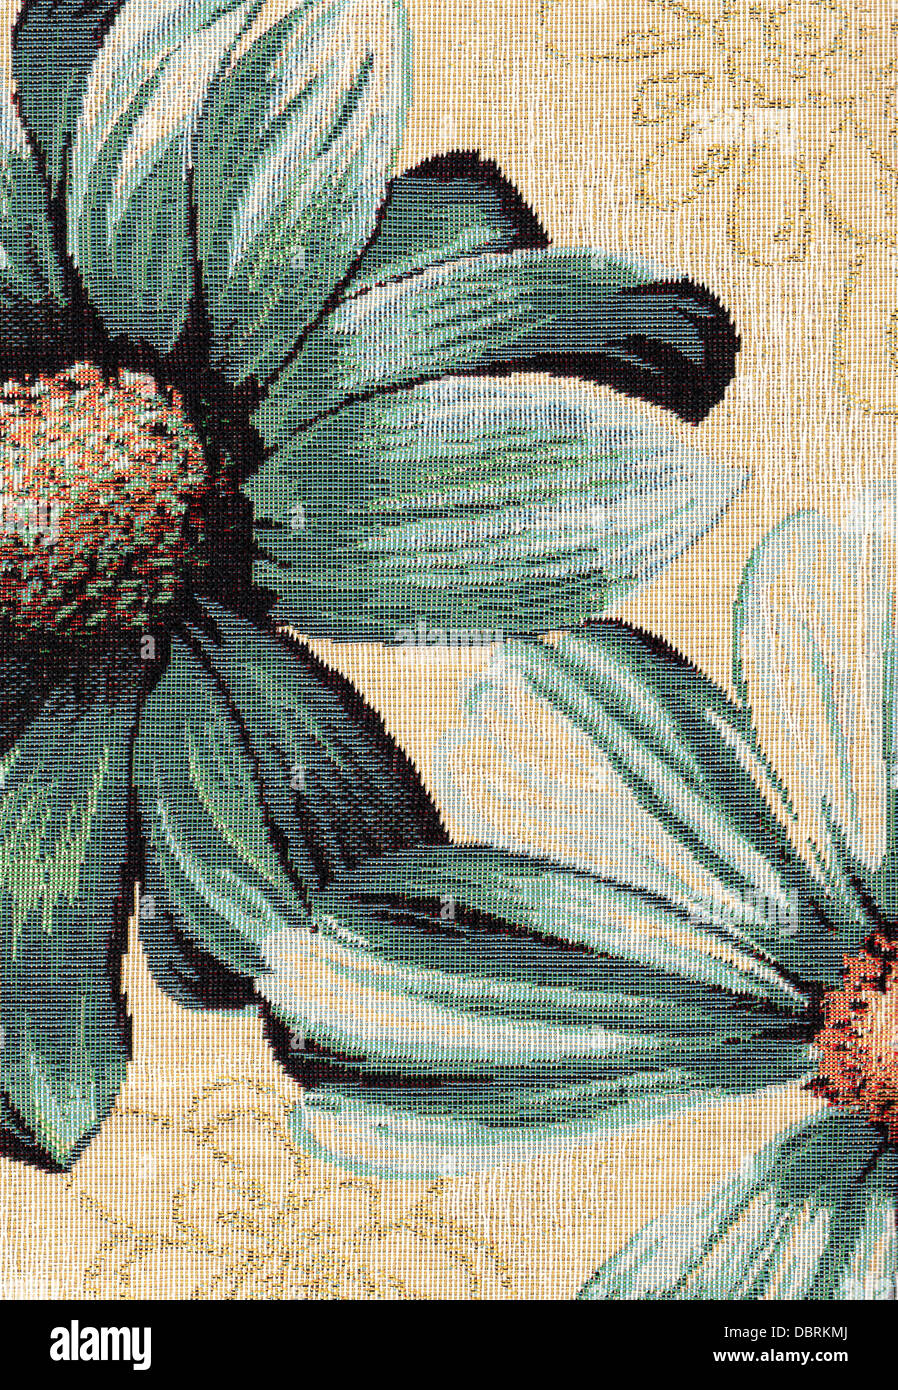 Closeup of retro tapestry fabric pattern with classical image of the colorful floral ornament - Stock Image